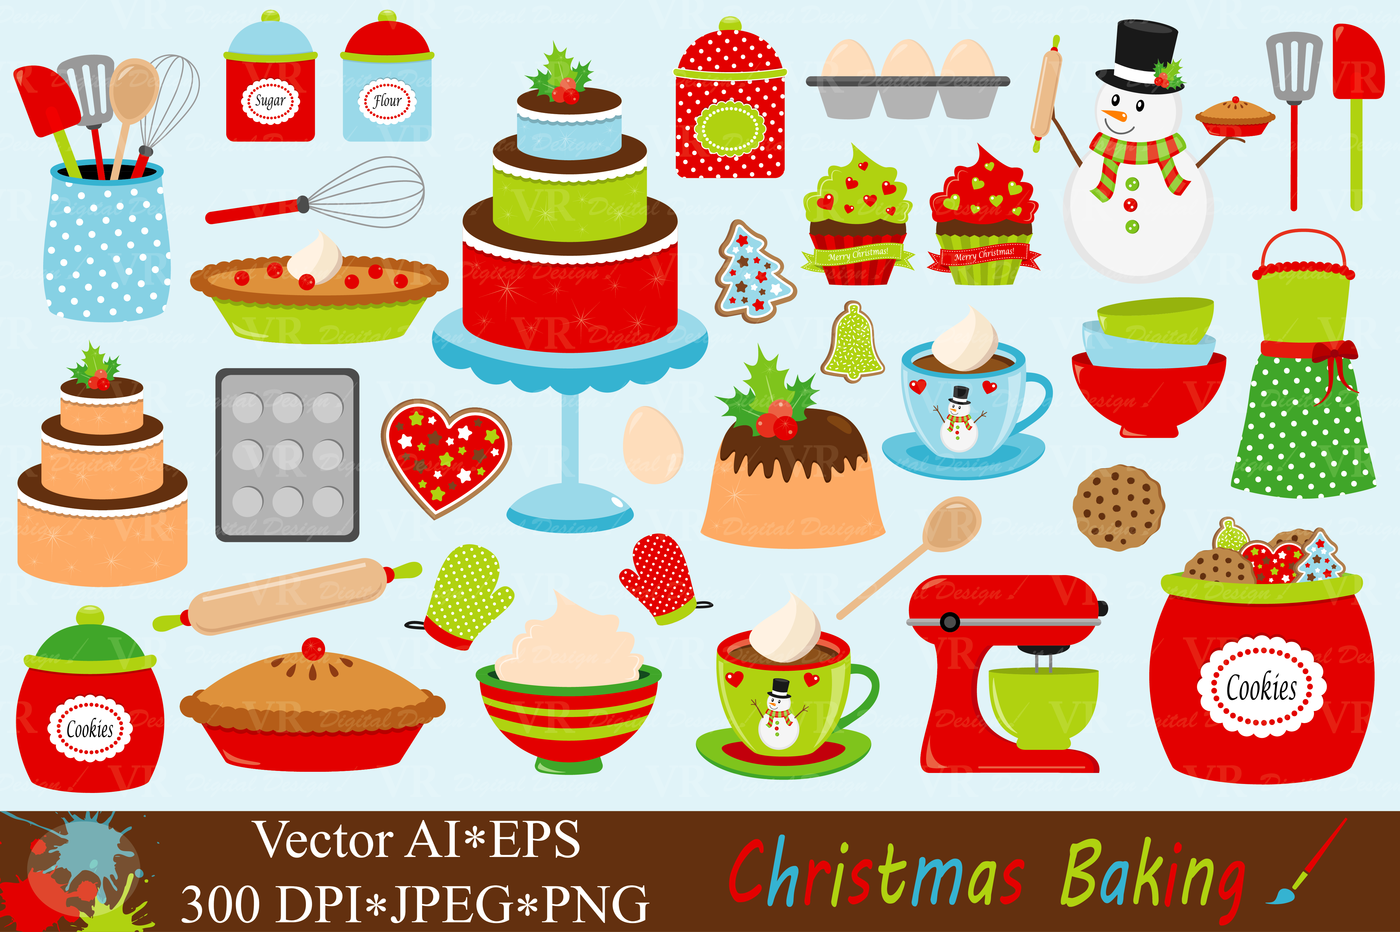 Baking Christmas Cookies Clipart.Christmas Baking Clipart Vector By Vr Digital Design